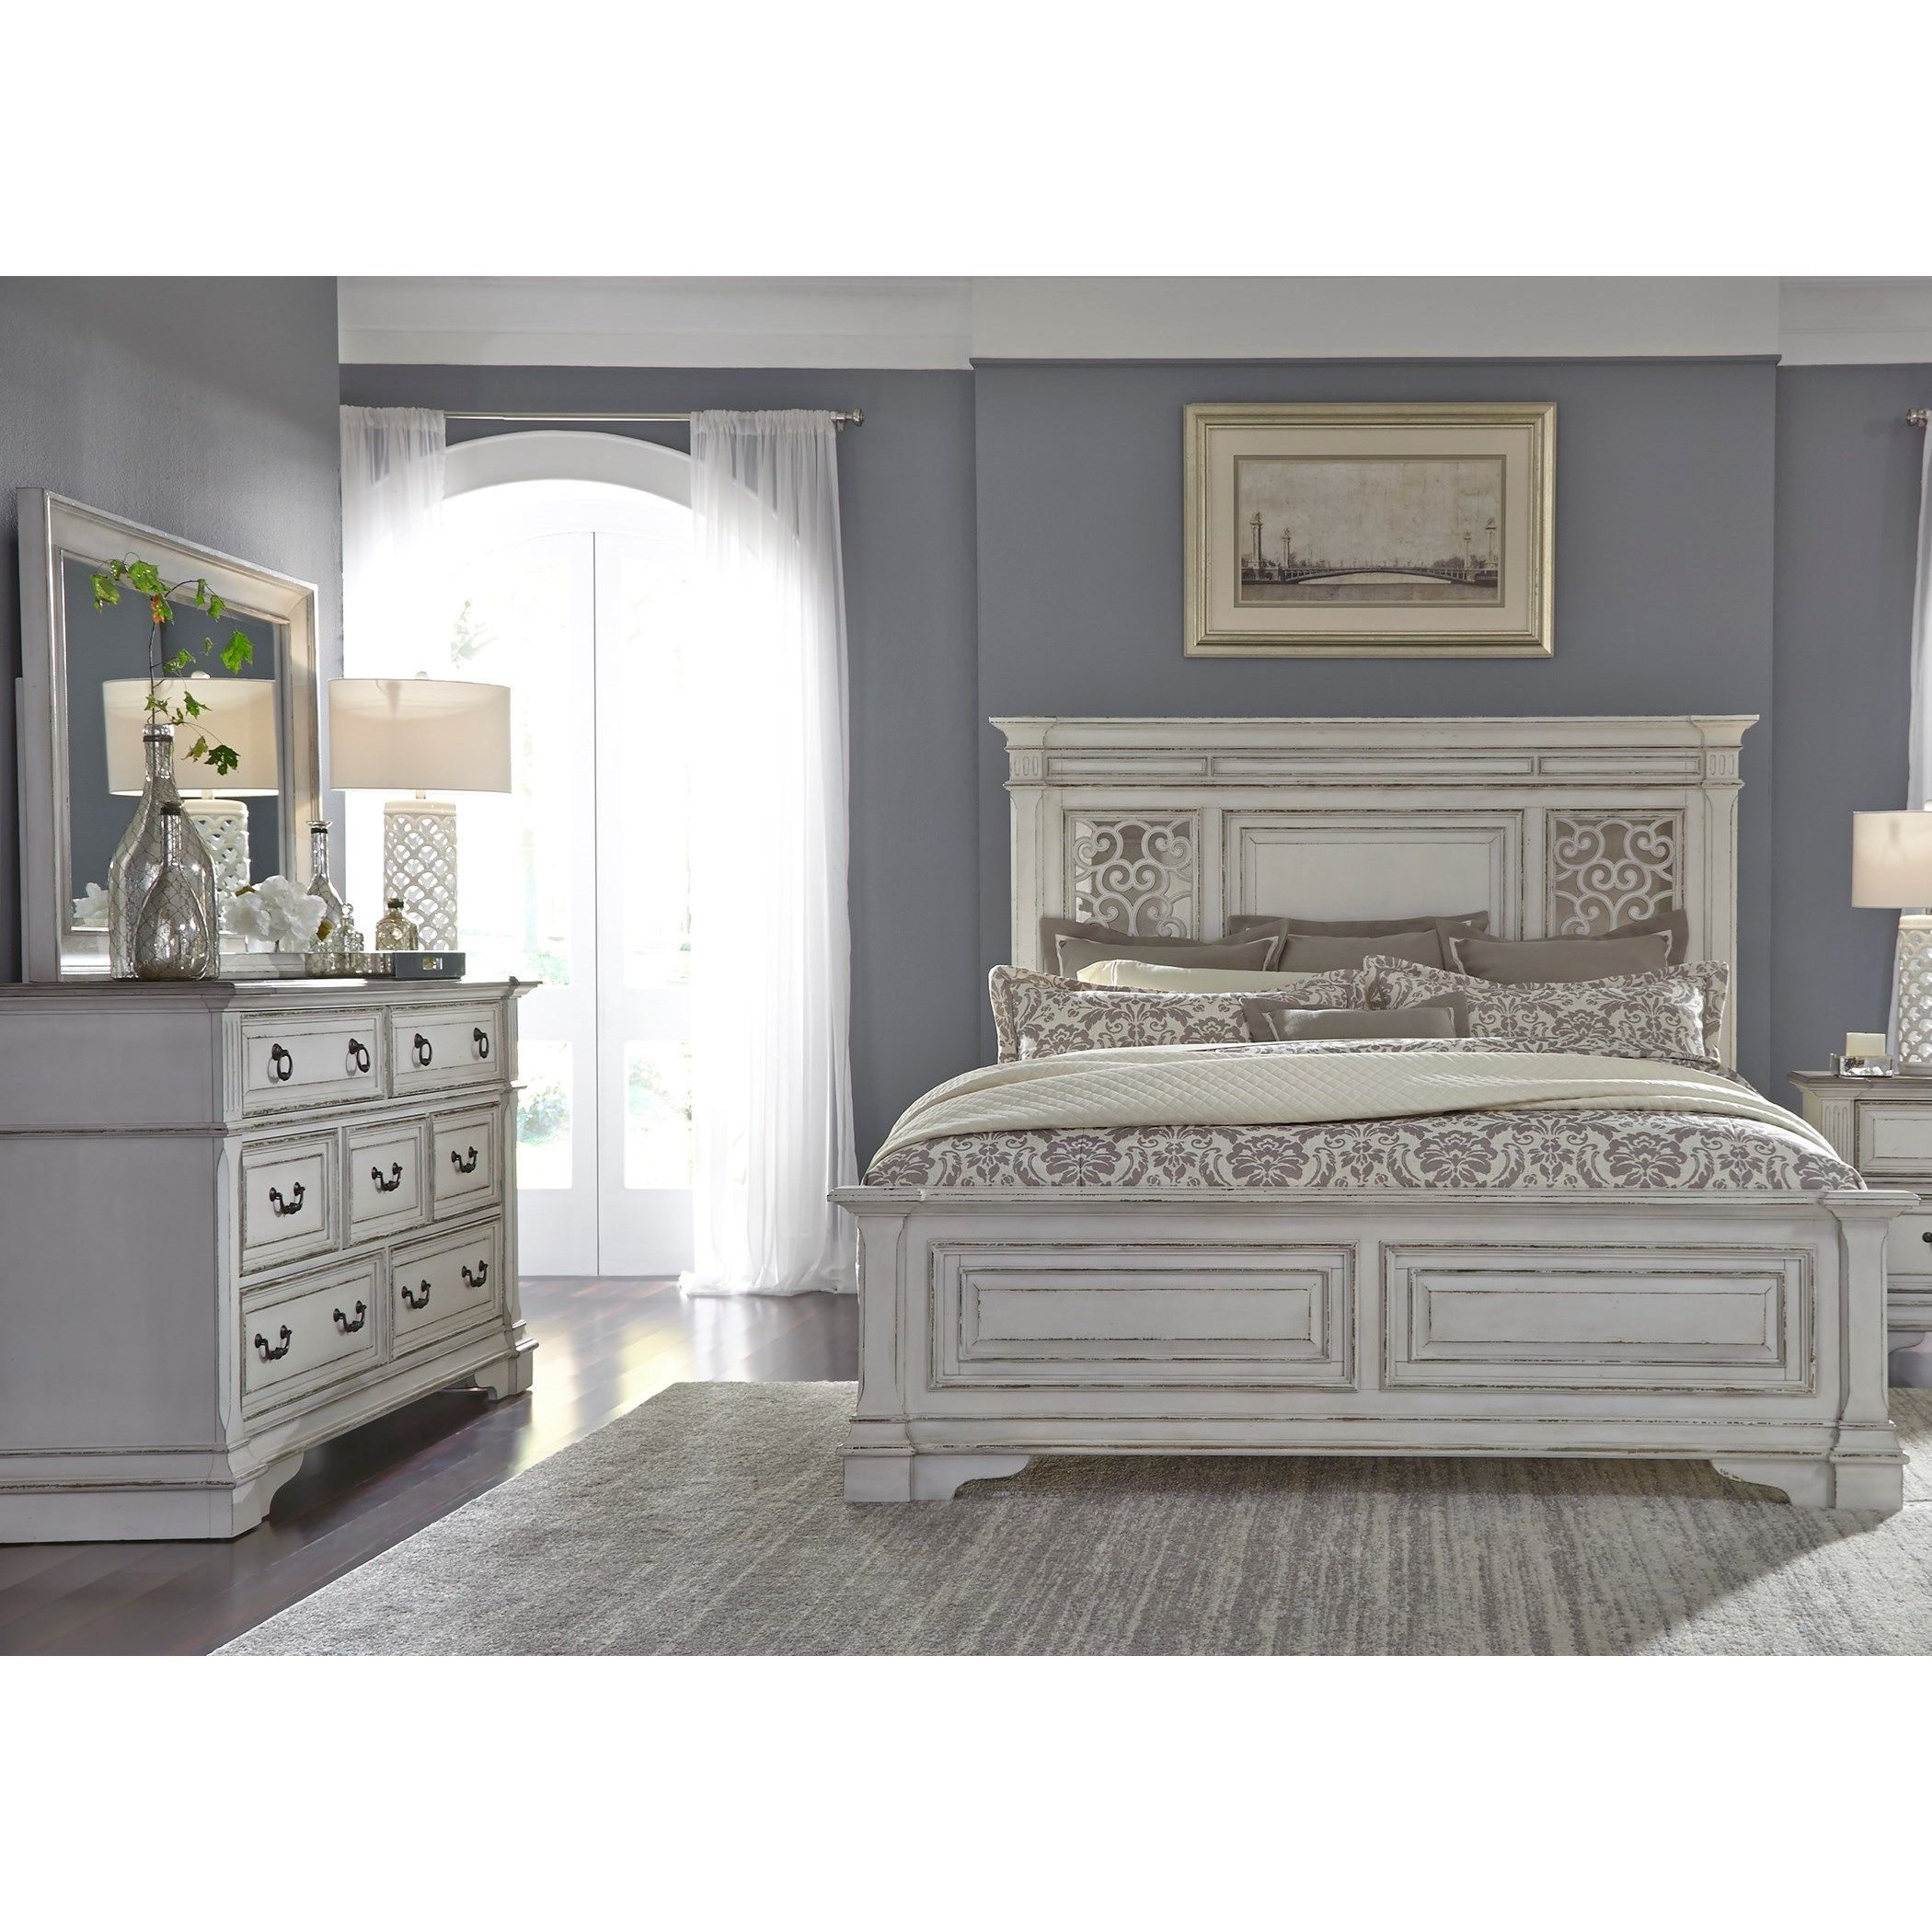 Abbey Park Queen Bedroom Group by Liberty Furniture in